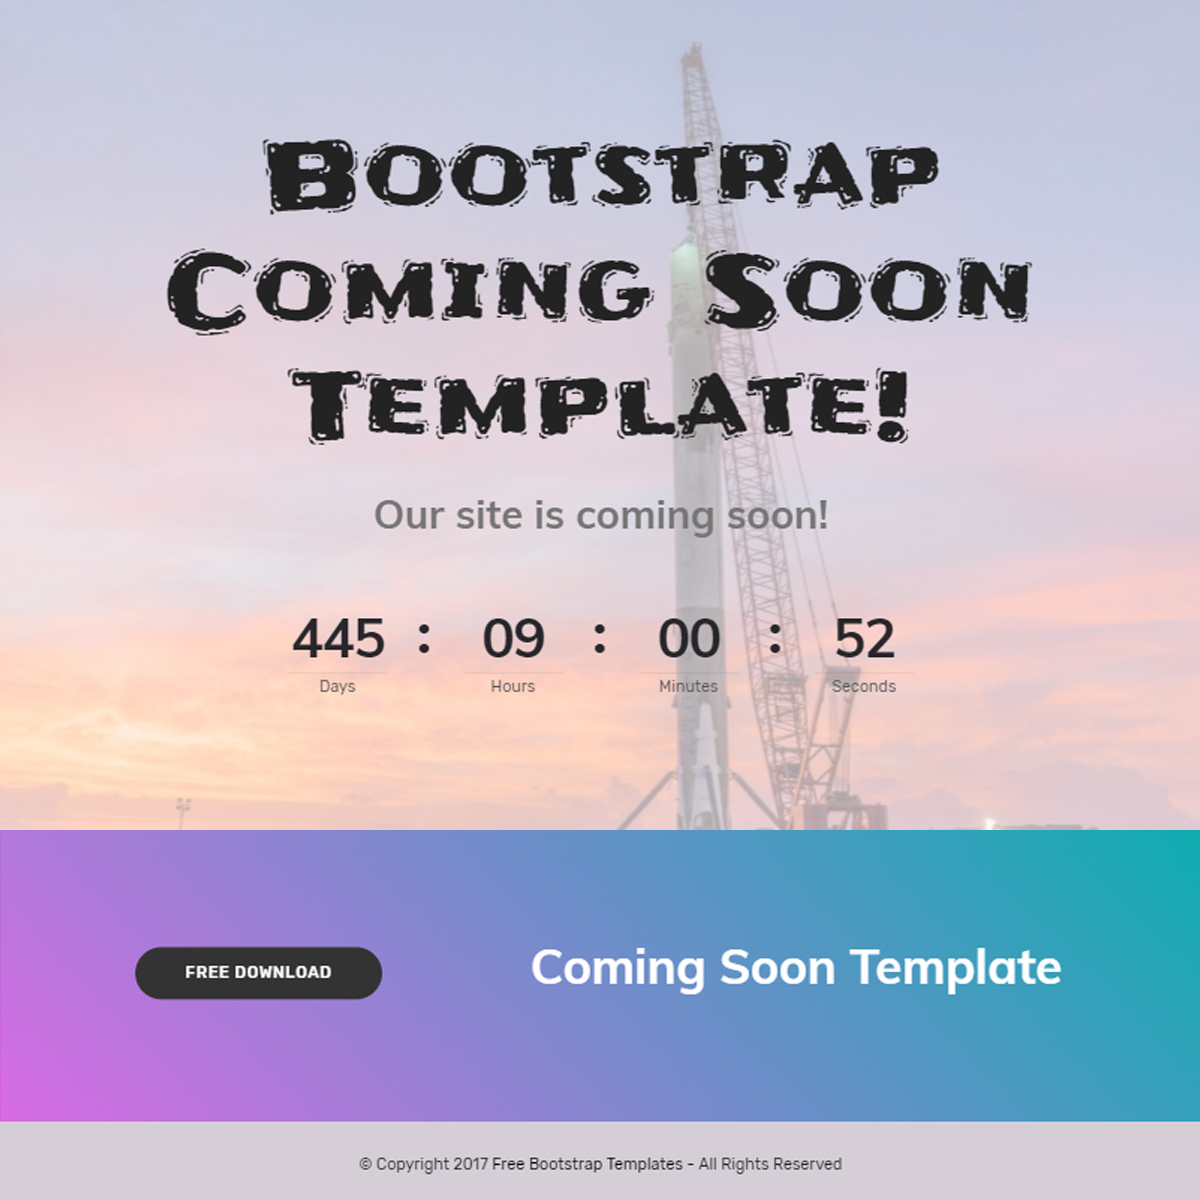 Free Download Bootstrap Coming Soon Templates